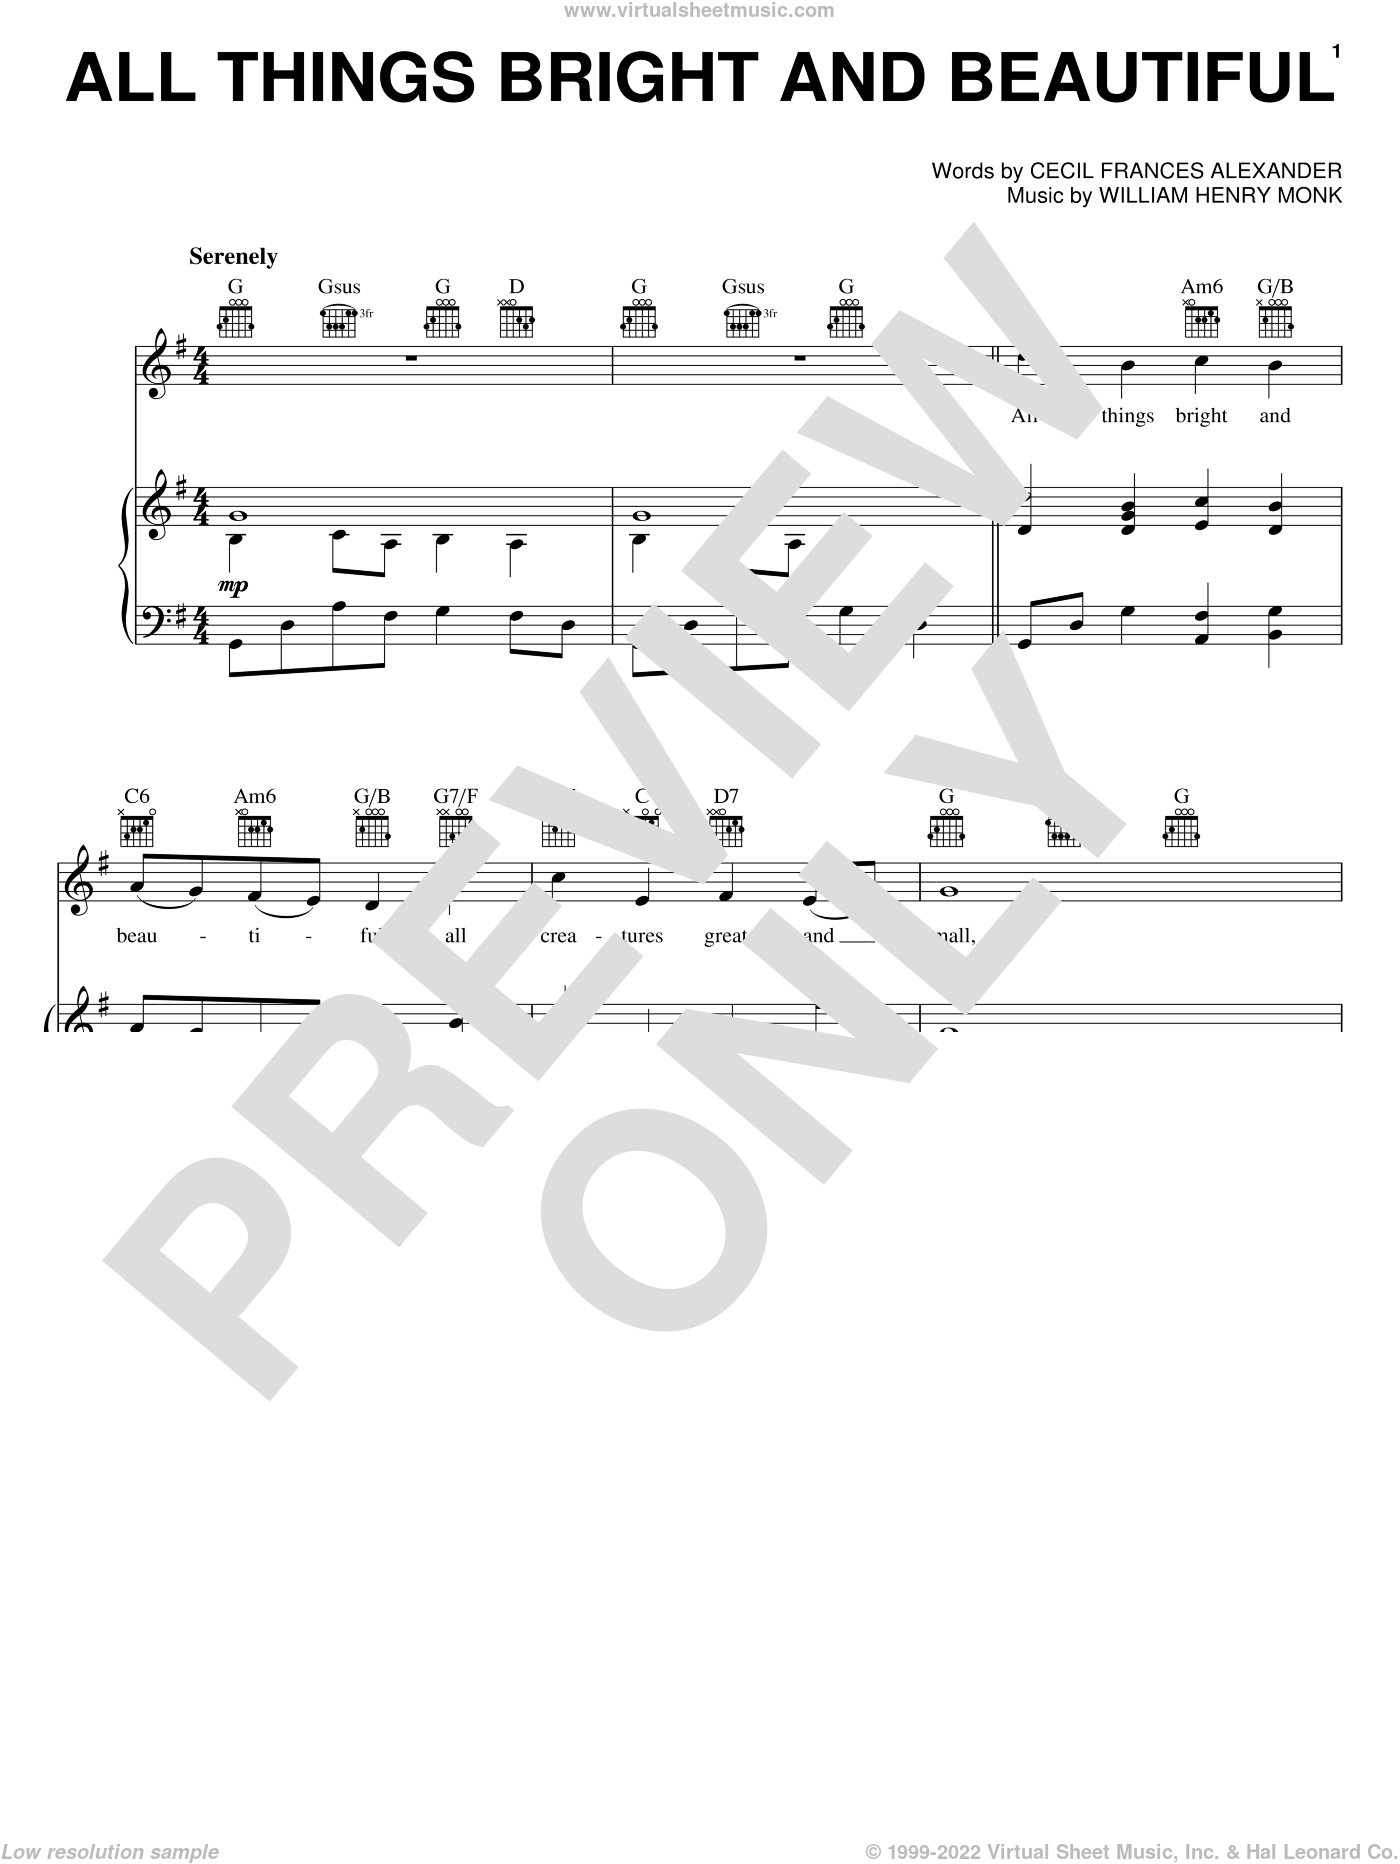 All Things Bright And Beautiful sheet music for voice, piano or guitar by William Henry Monk